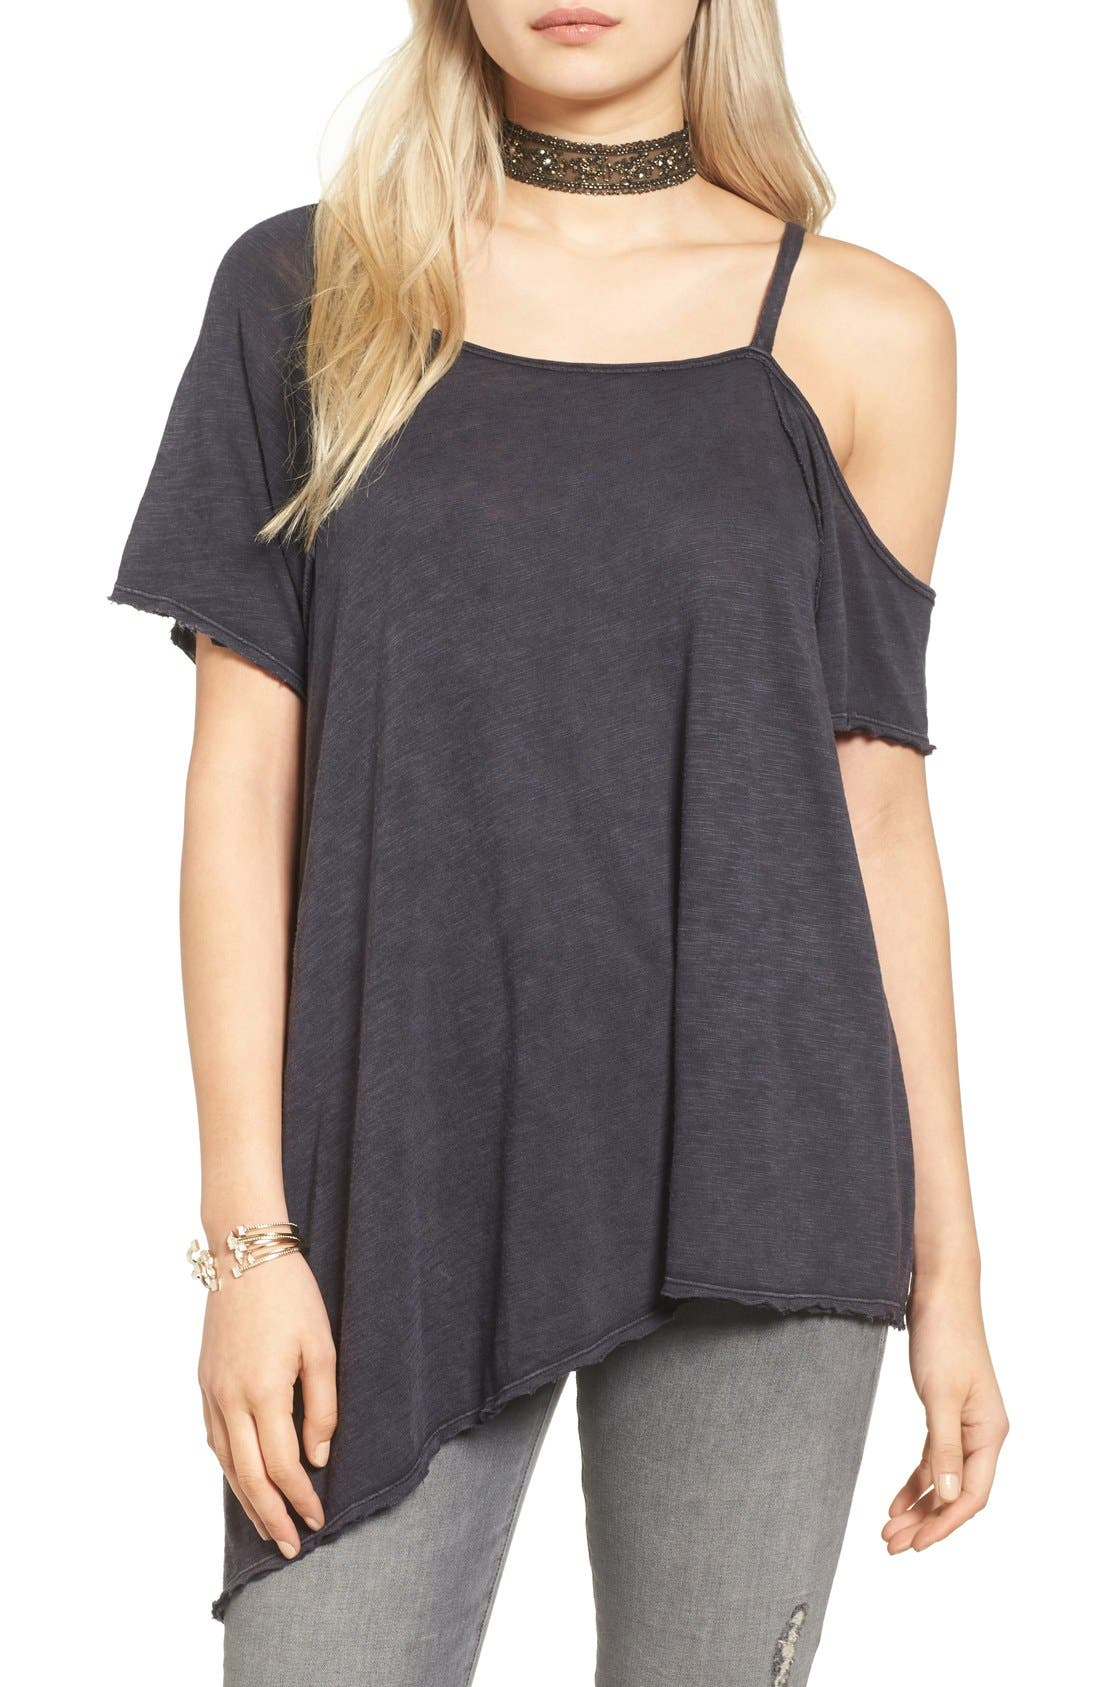 FREE PEOPLE,                             Coraline Tee,                             Alternate thumbnail 6, color,                             030